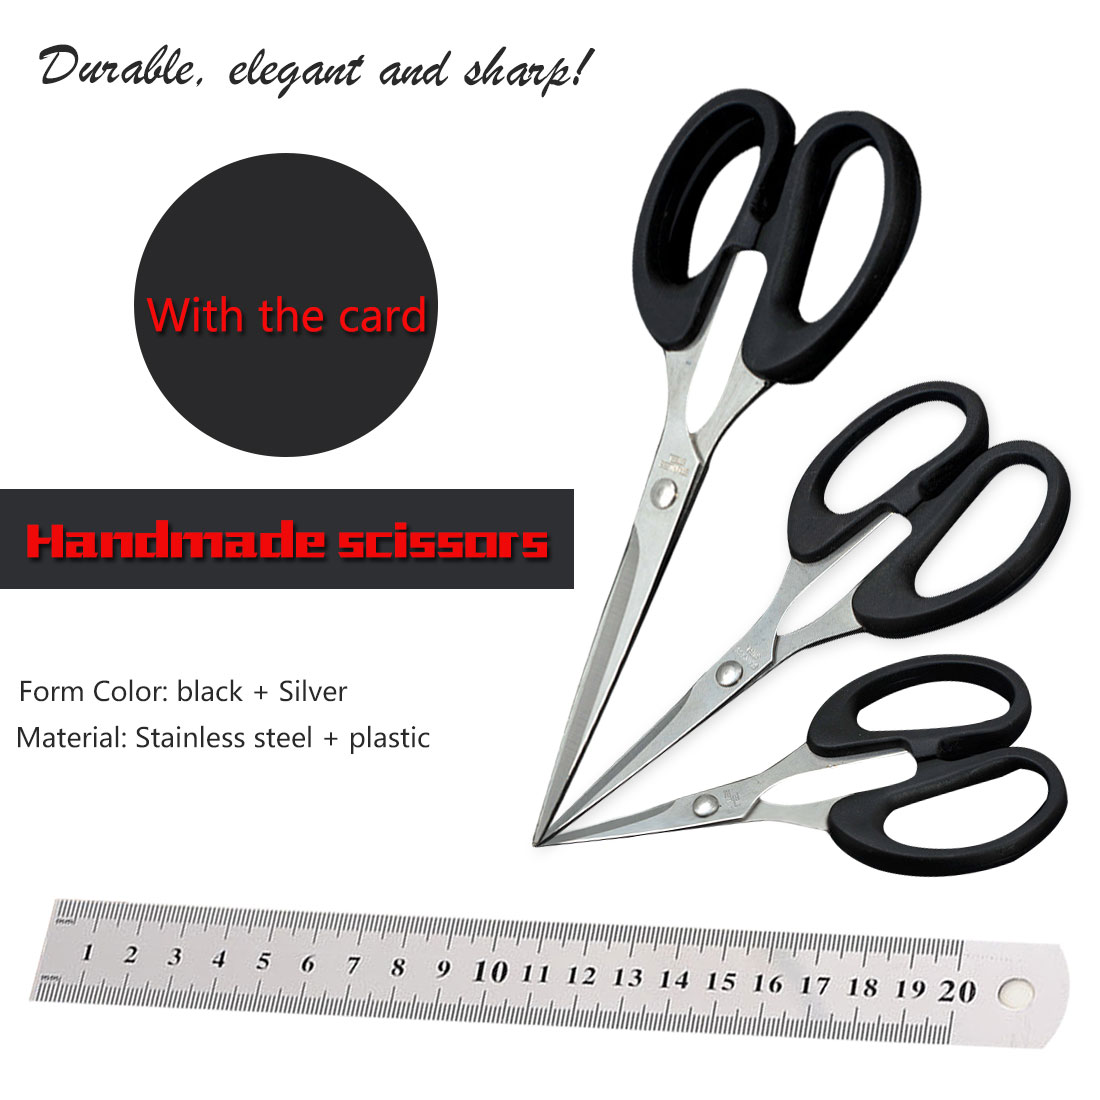 1pcs DIY Scissor Tool Durable Stainless Steel Household Scissors Office Paper-cut Scissors Sharp Shears Students Kitchen Scissor